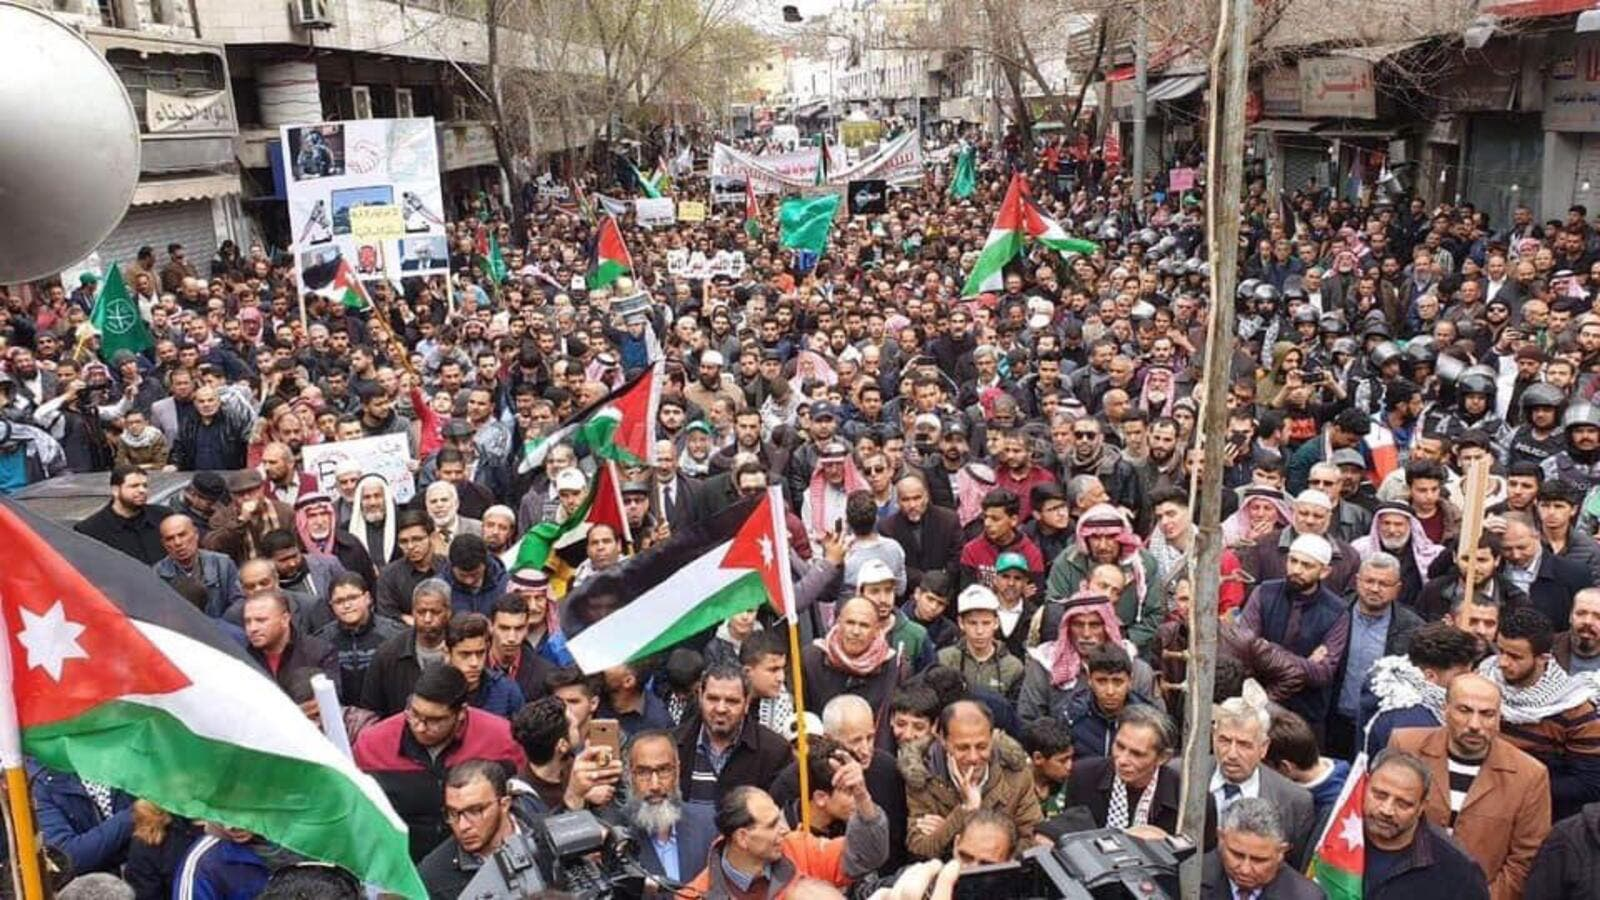 March in Amman to support Jerusalem (Twitter)